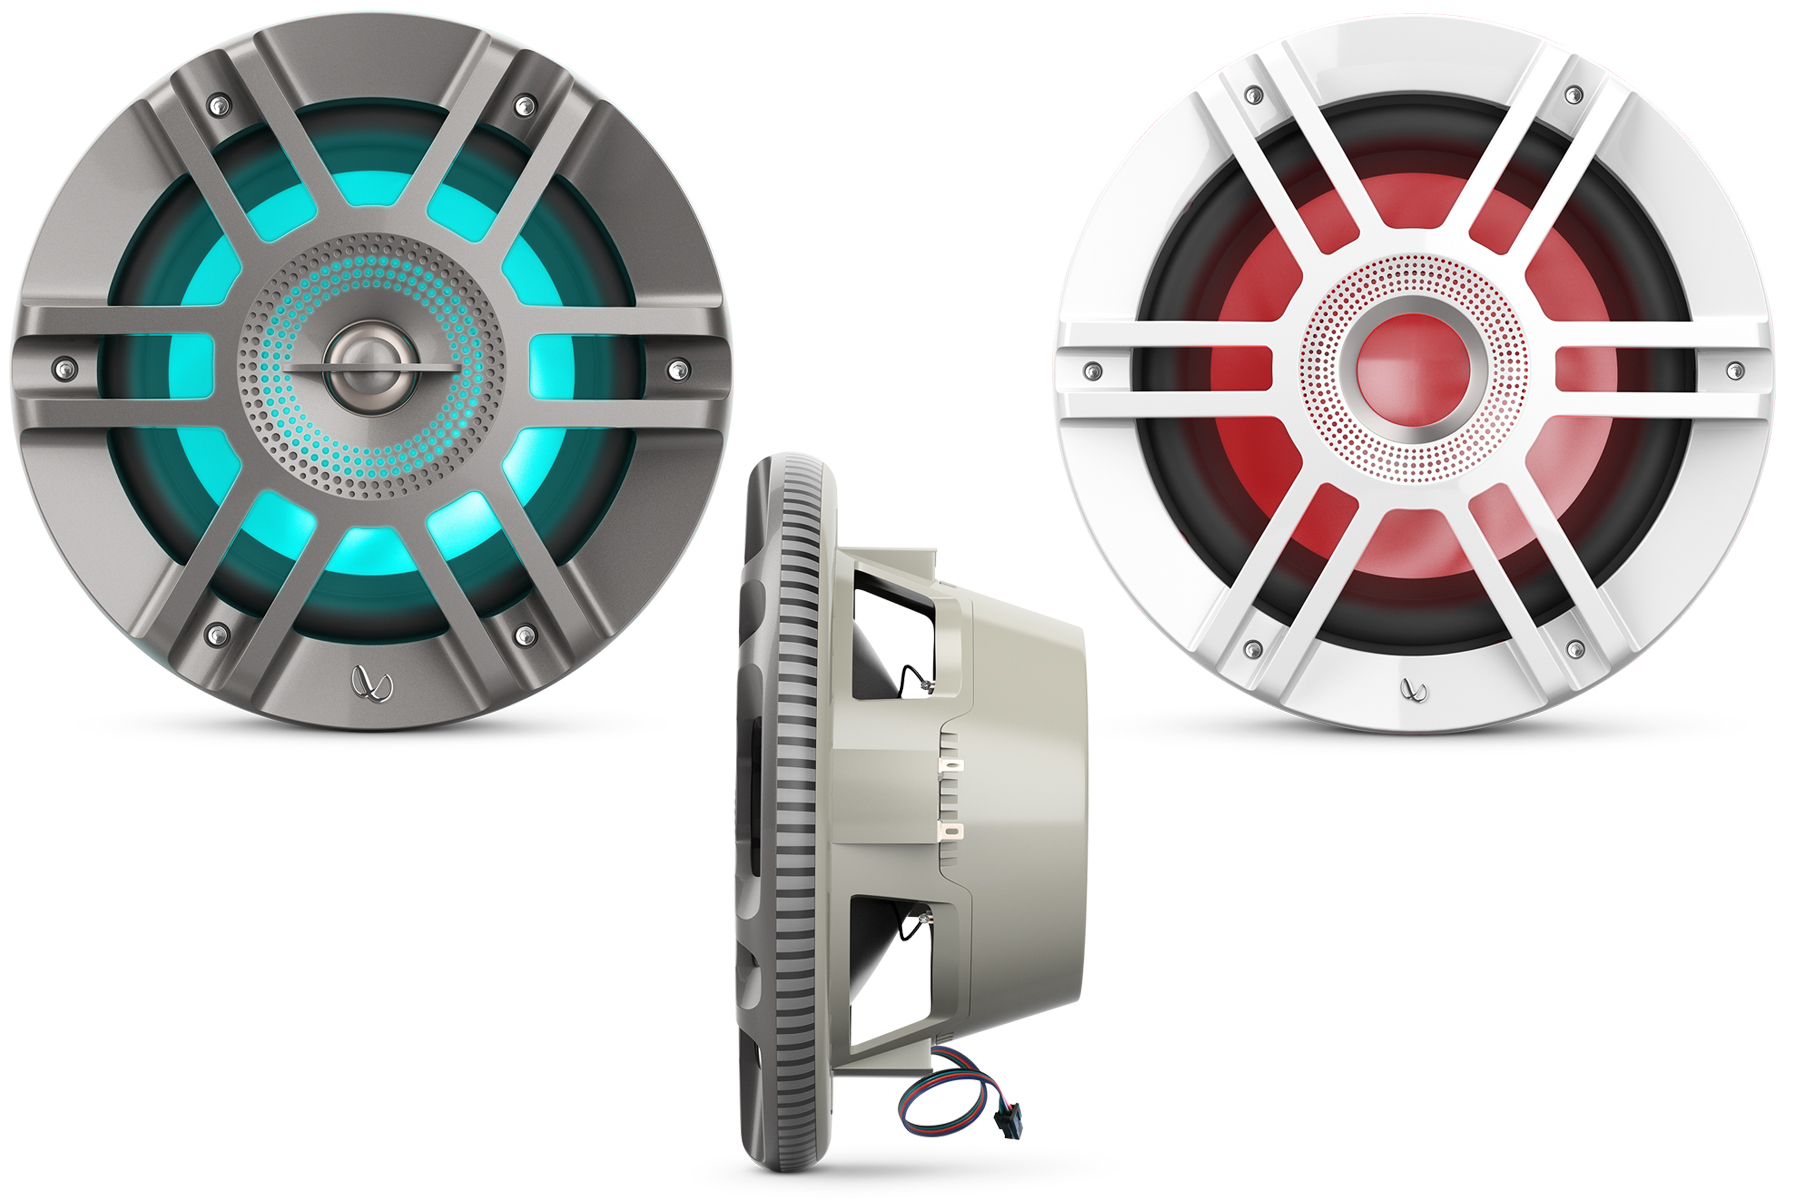 Harman releases new standard in Boat Speakers